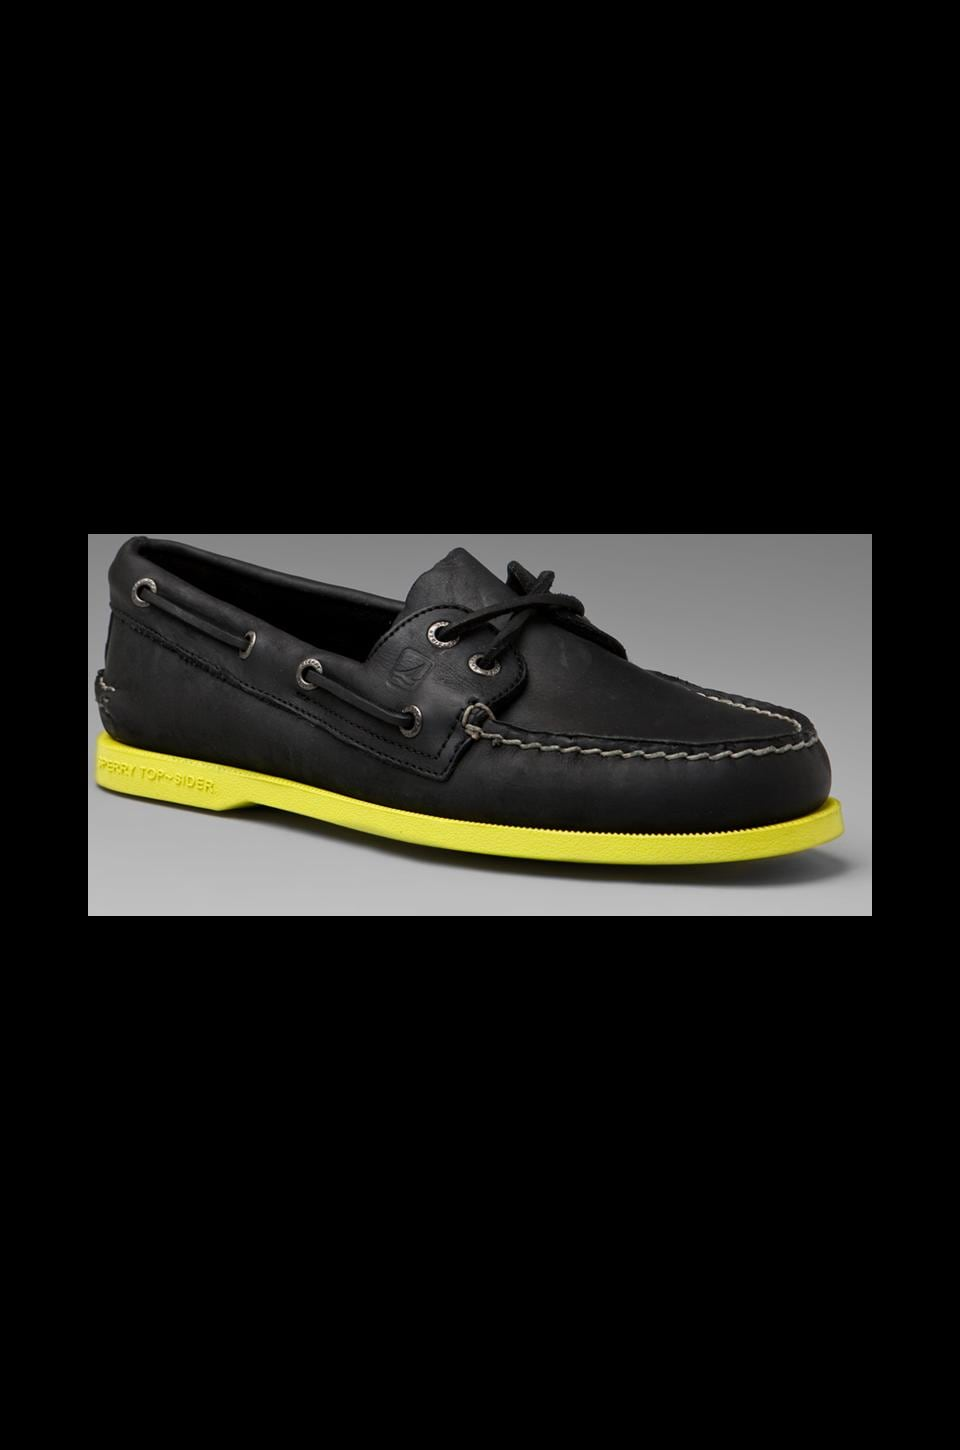 Sperry Top-Sider Cloud Collection Neon A/O in Black/Yellow